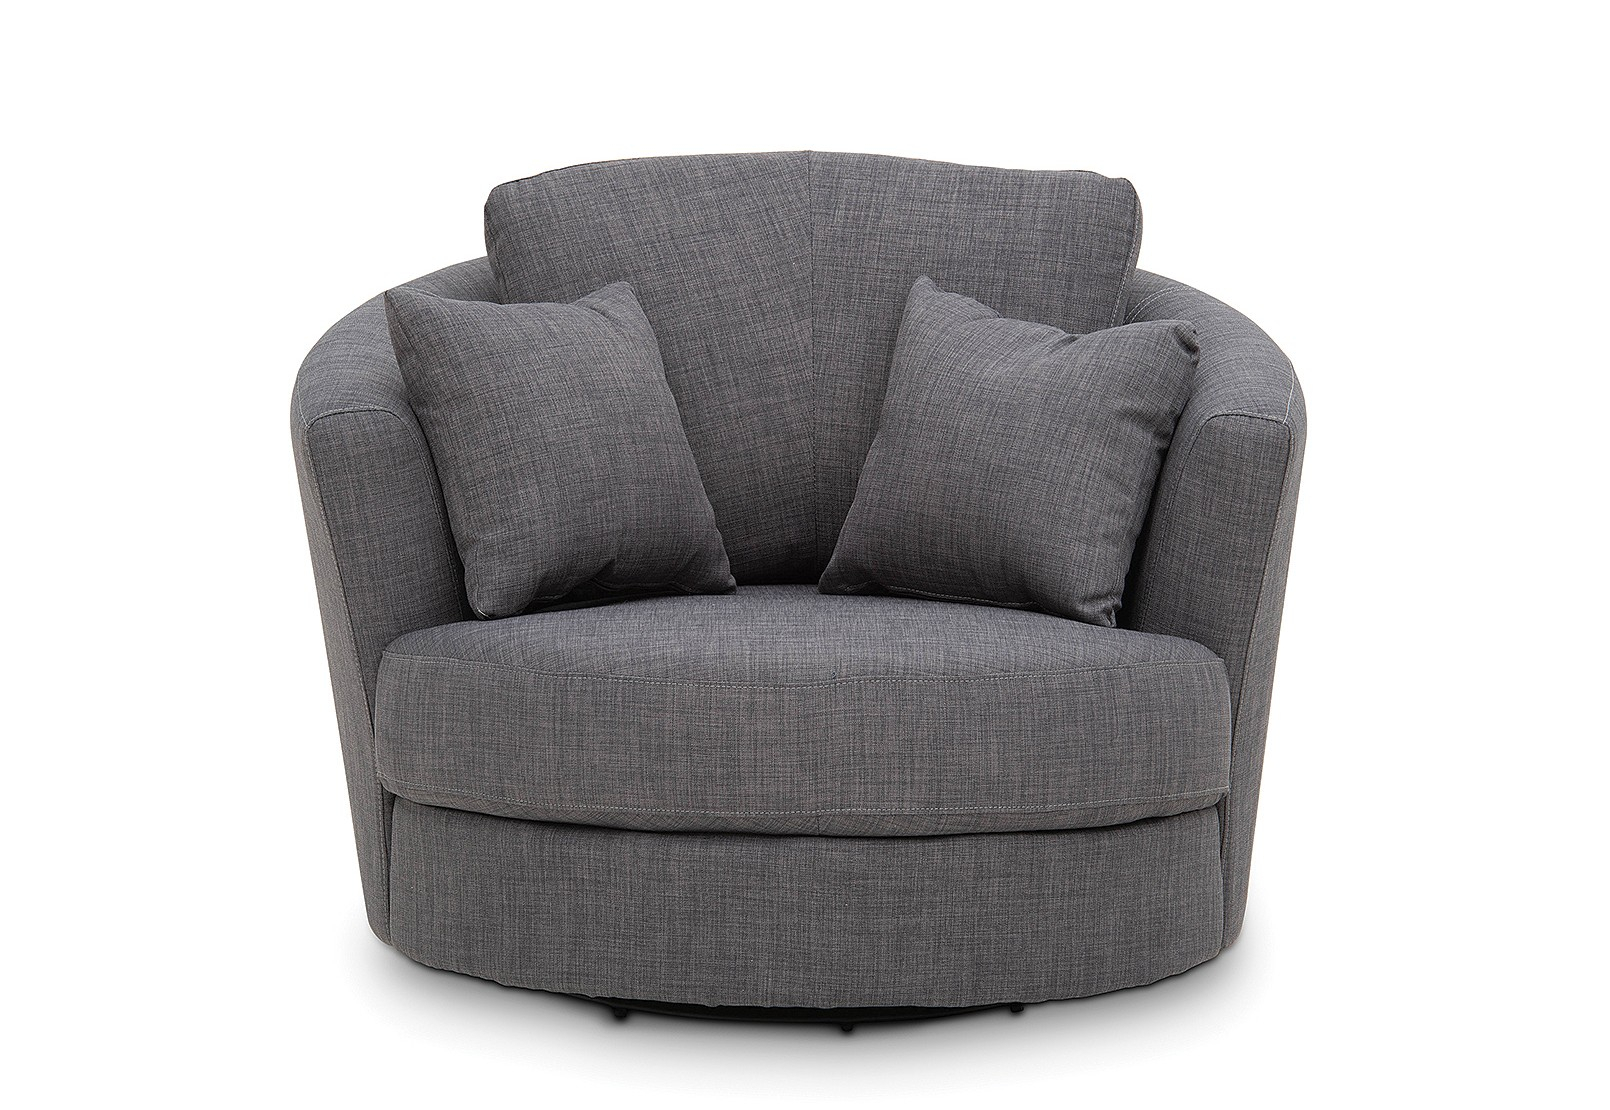 Omaha Fabric Swivel Chair | Amart Furniture Throughout Dark Grey Swivel Chairs (Photo 21 of 25)